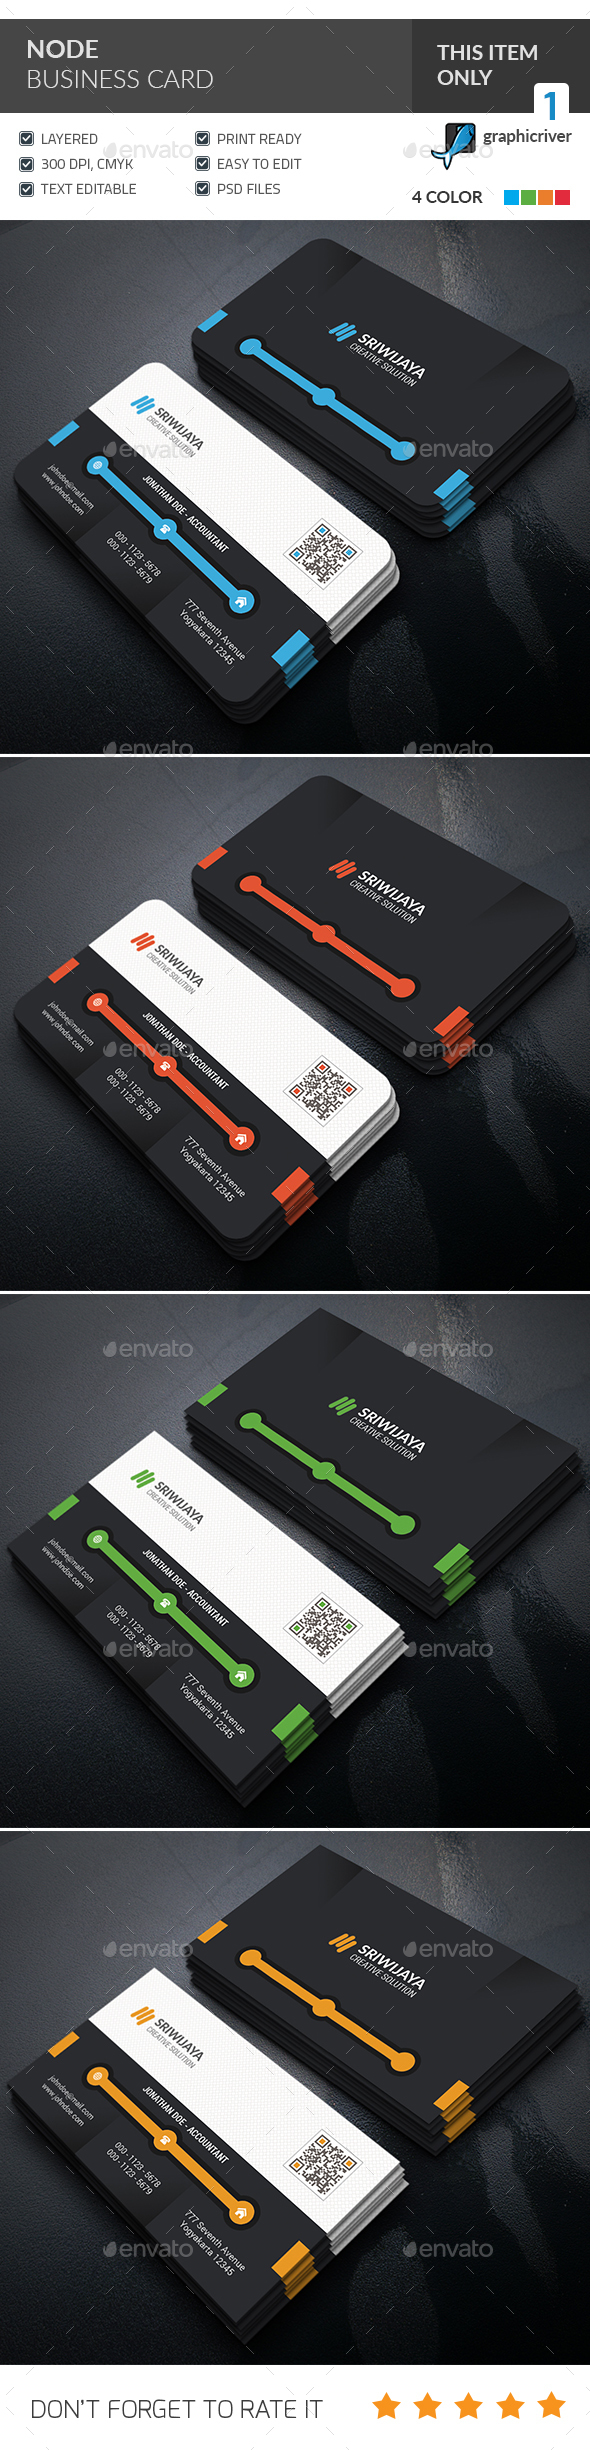 Node Business Card  - Corporate Business Cards